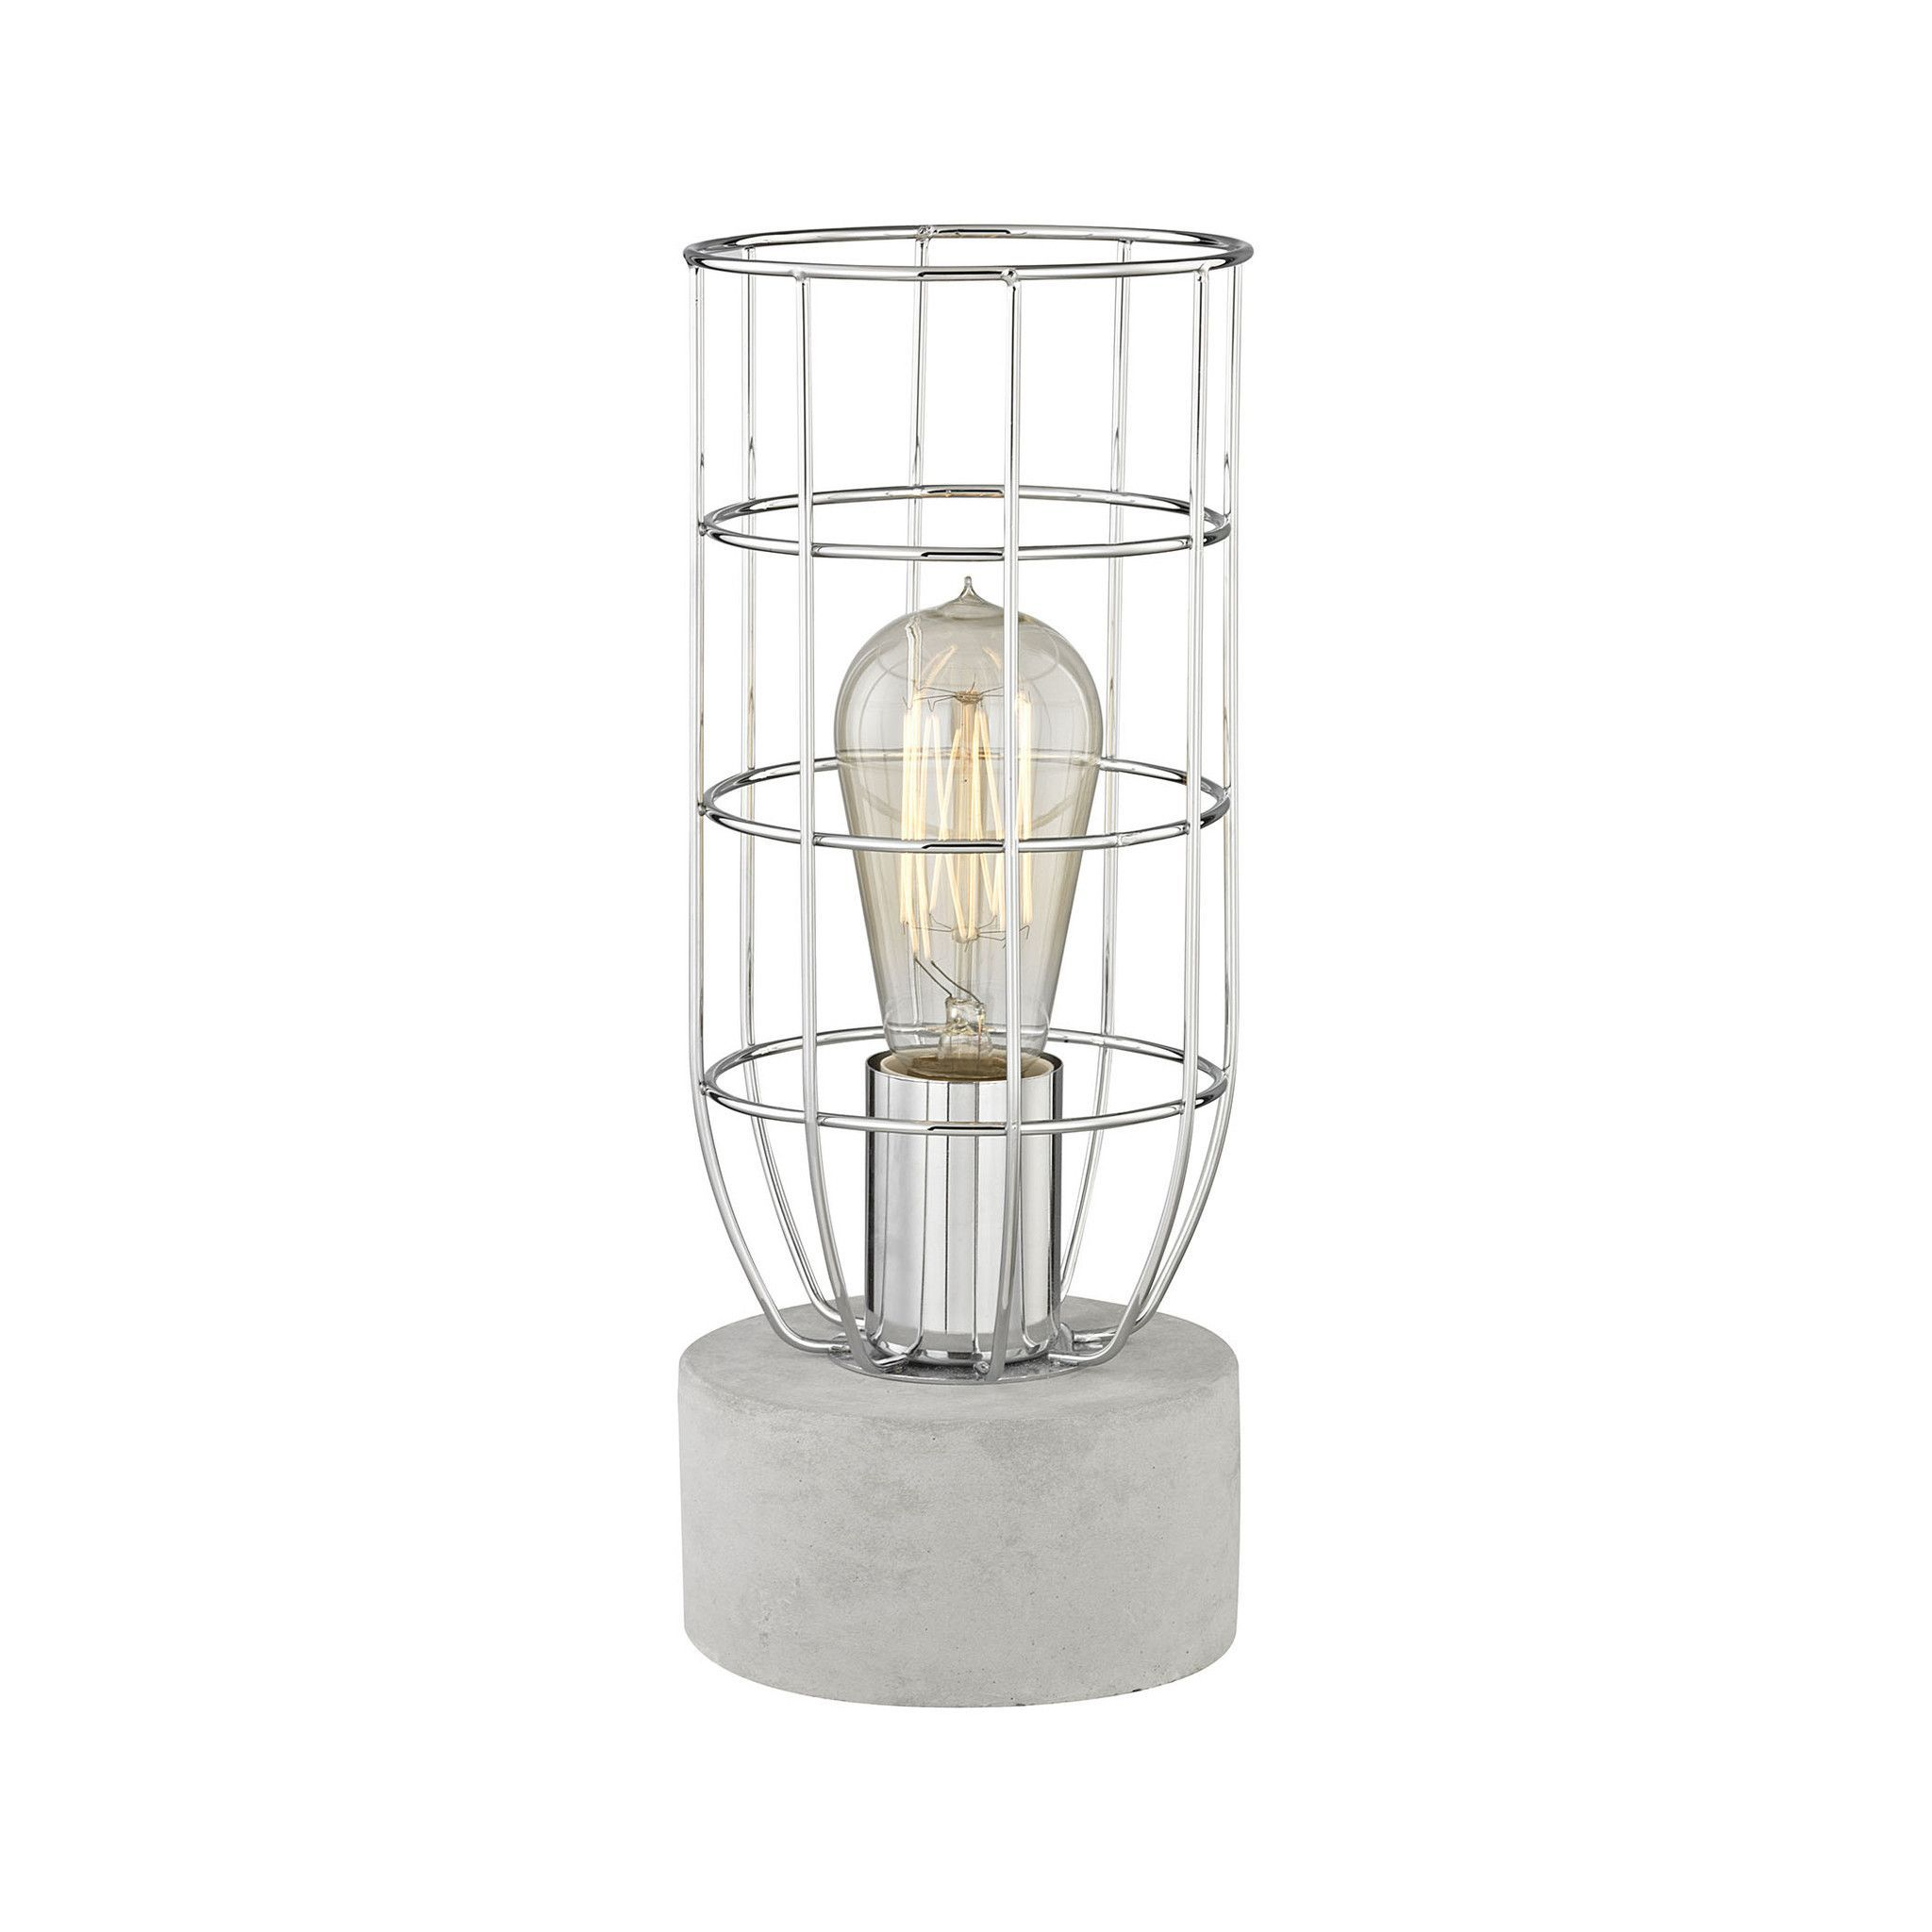 0-000742>1-Light Wardenclyffe Table Lamp Polished Concrete/Polished Nickel